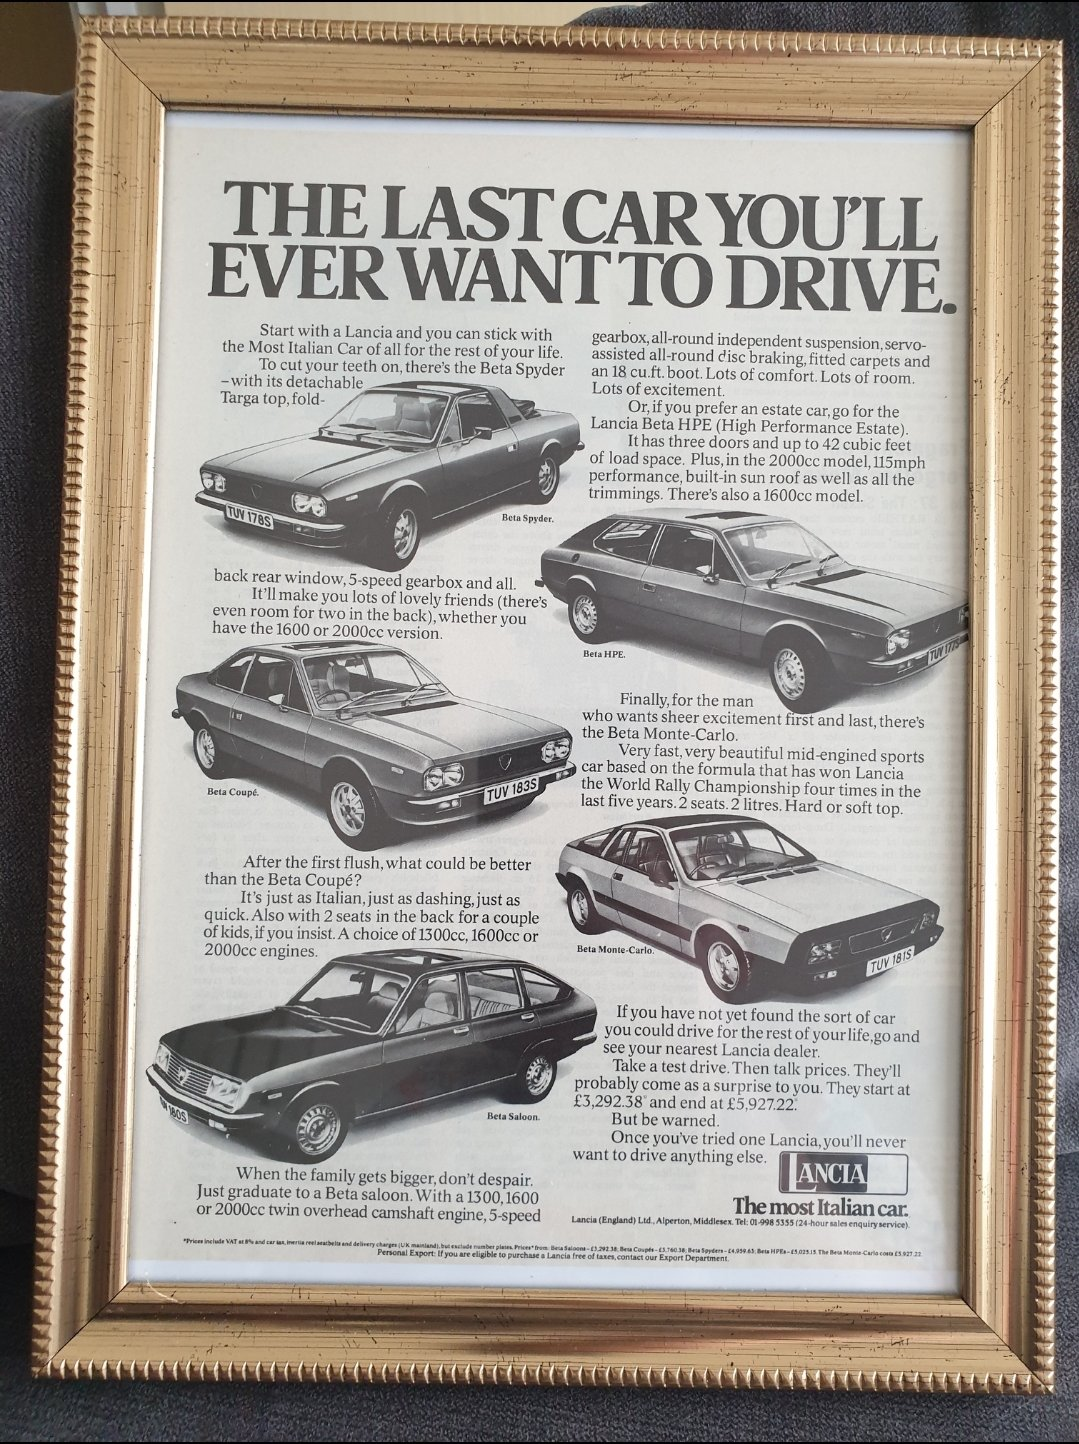 1978 Lancia Framed Advert Original  For Sale (picture 1 of 2)